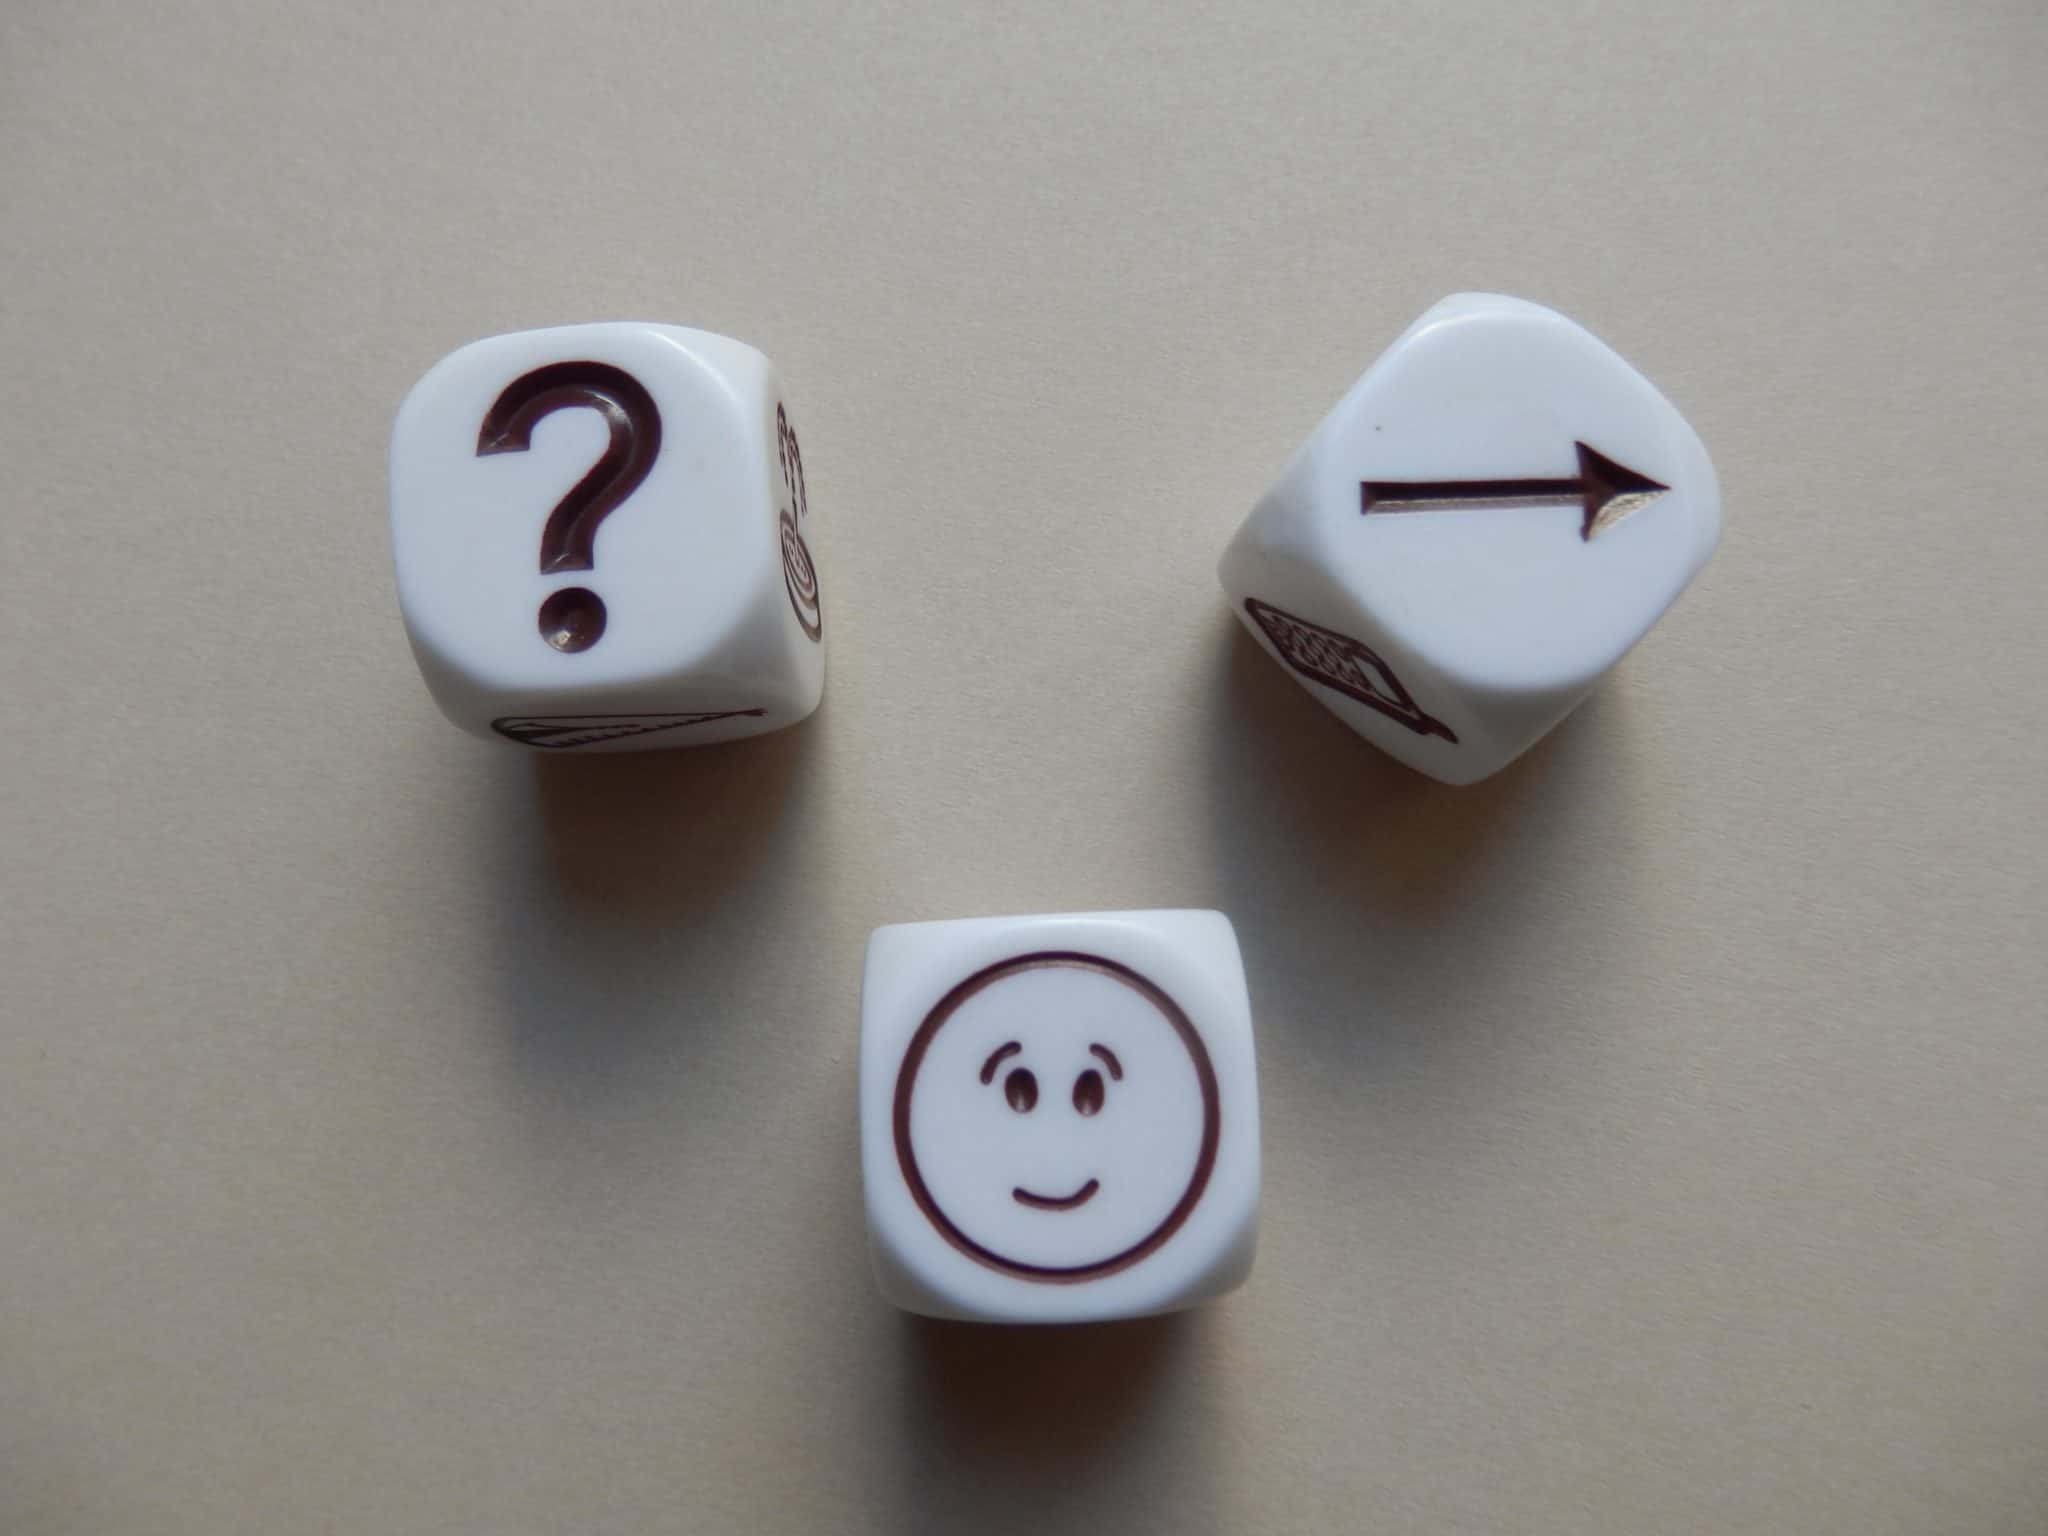 picture of dice showing a question, face and arrow towards the game of creating an online omnipresence.